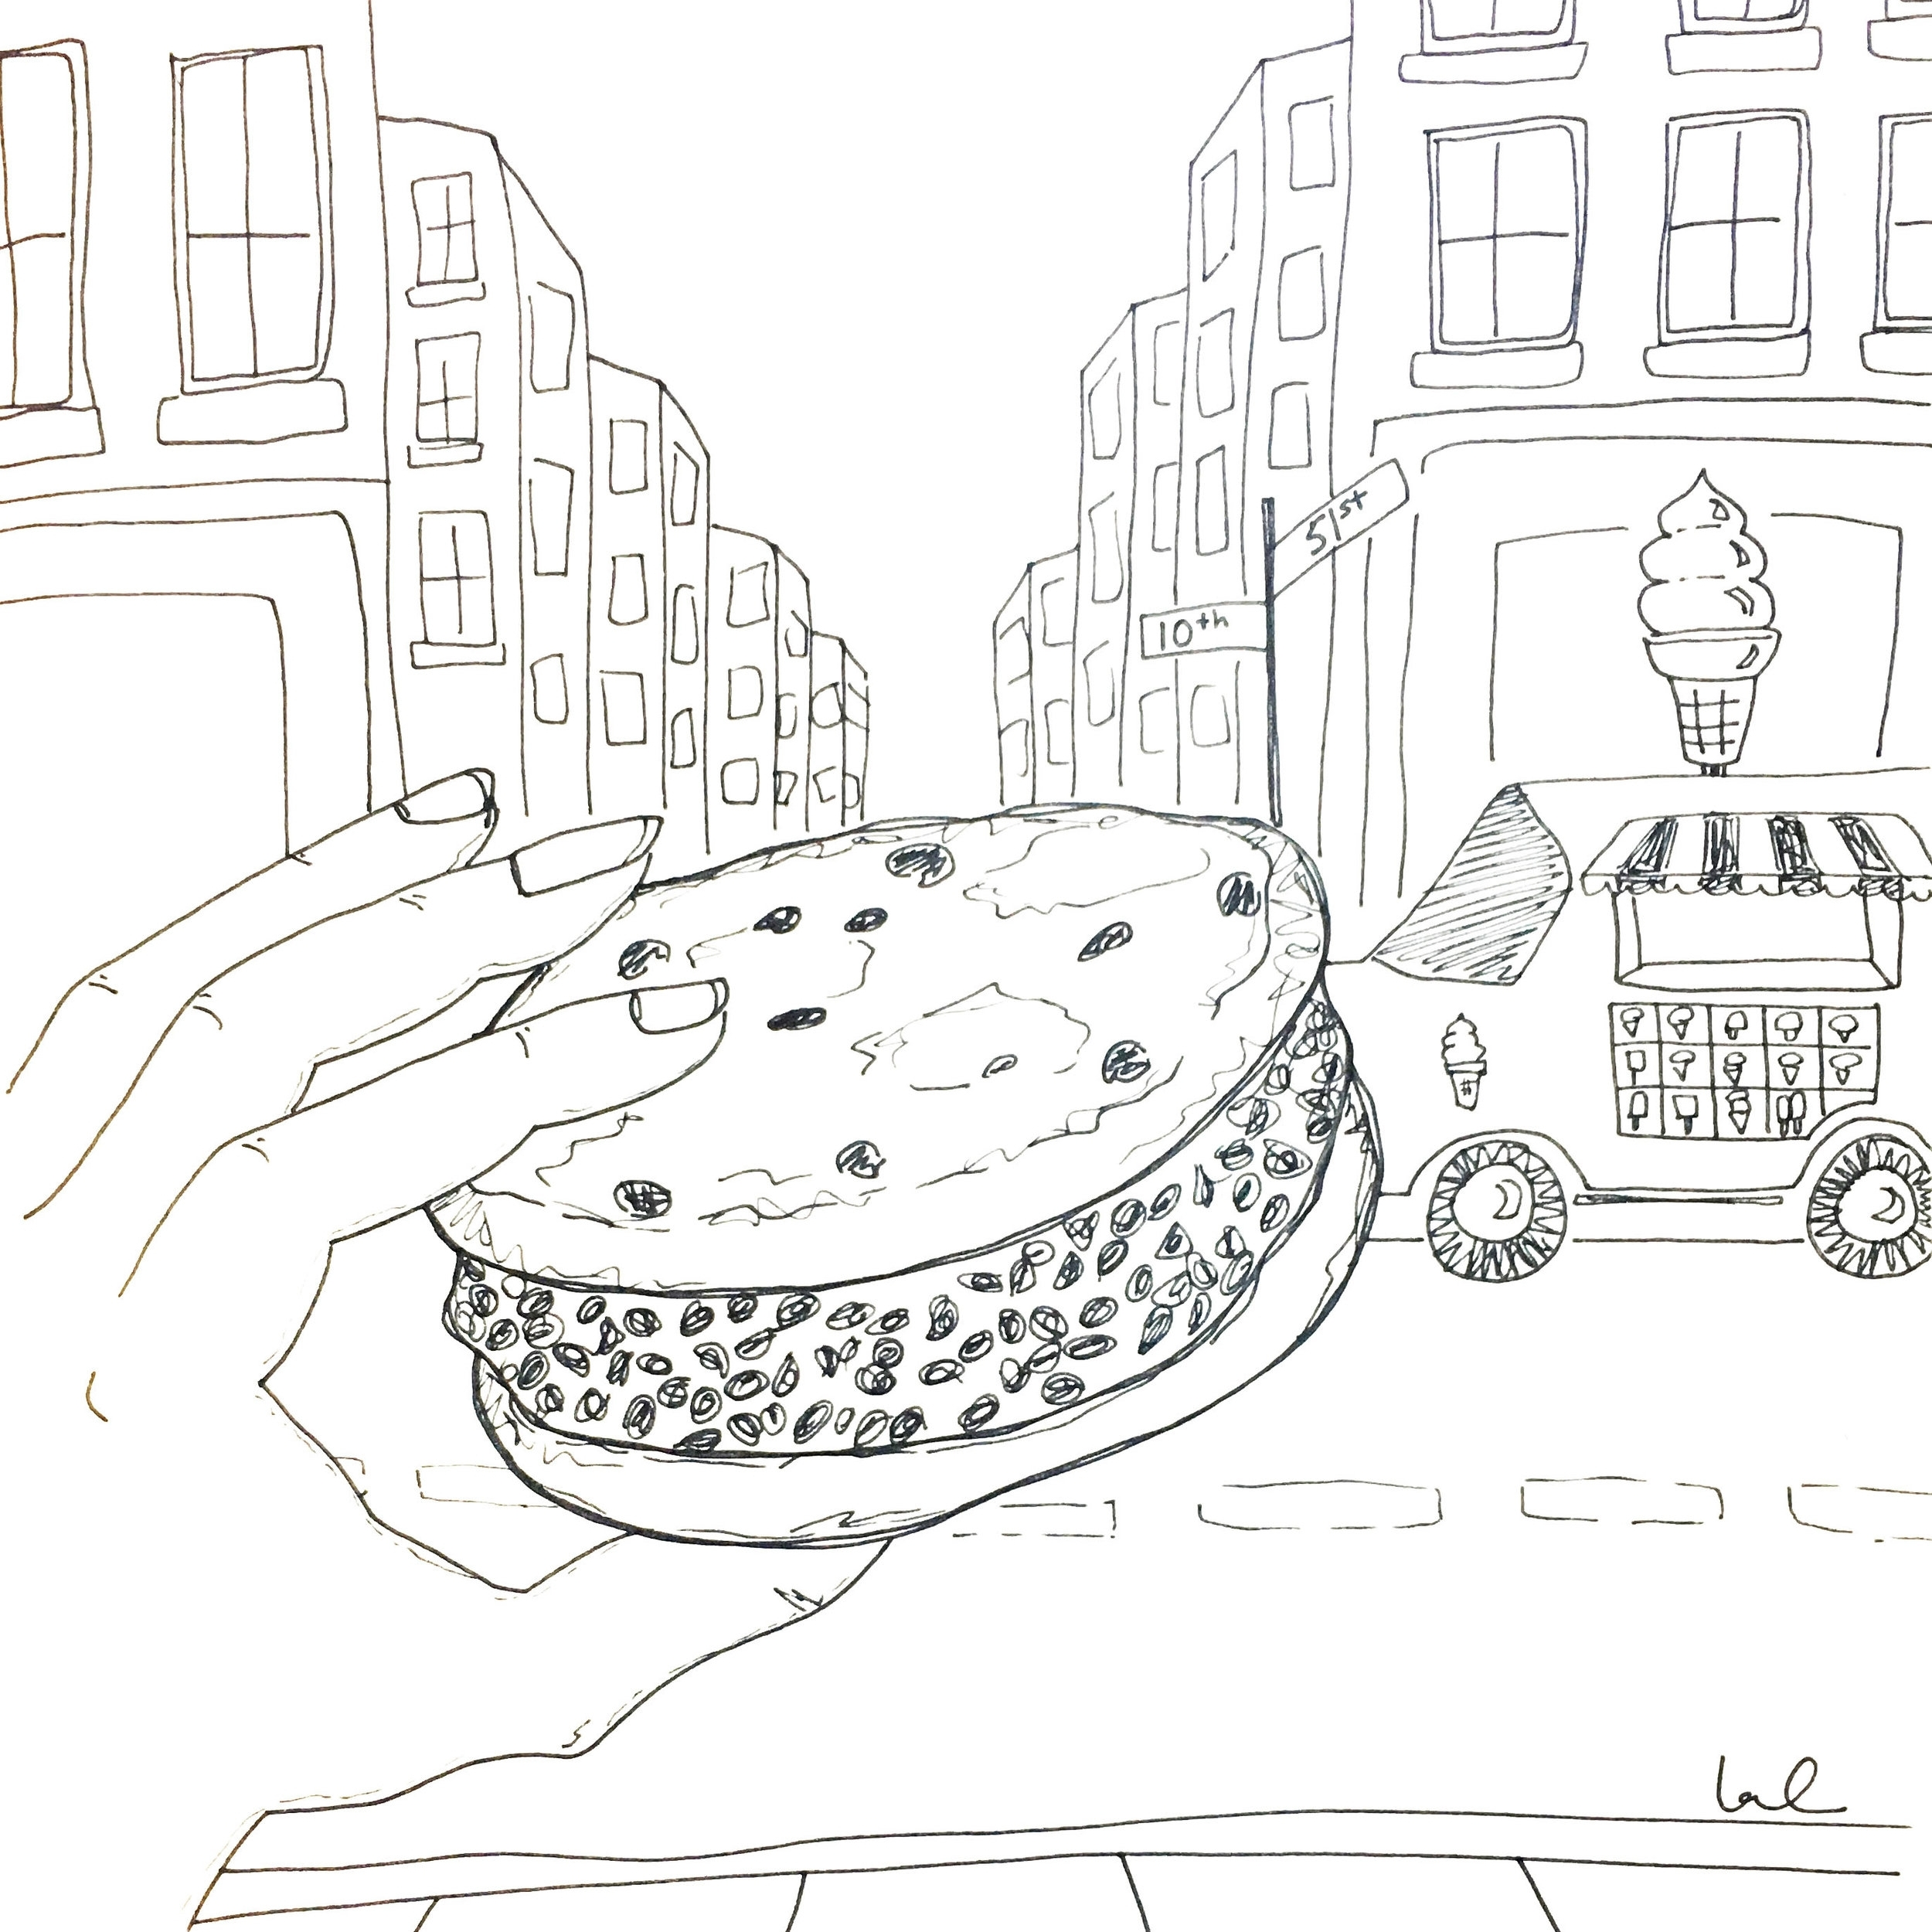 Ice cream truck drawing by Laurel Greenfield